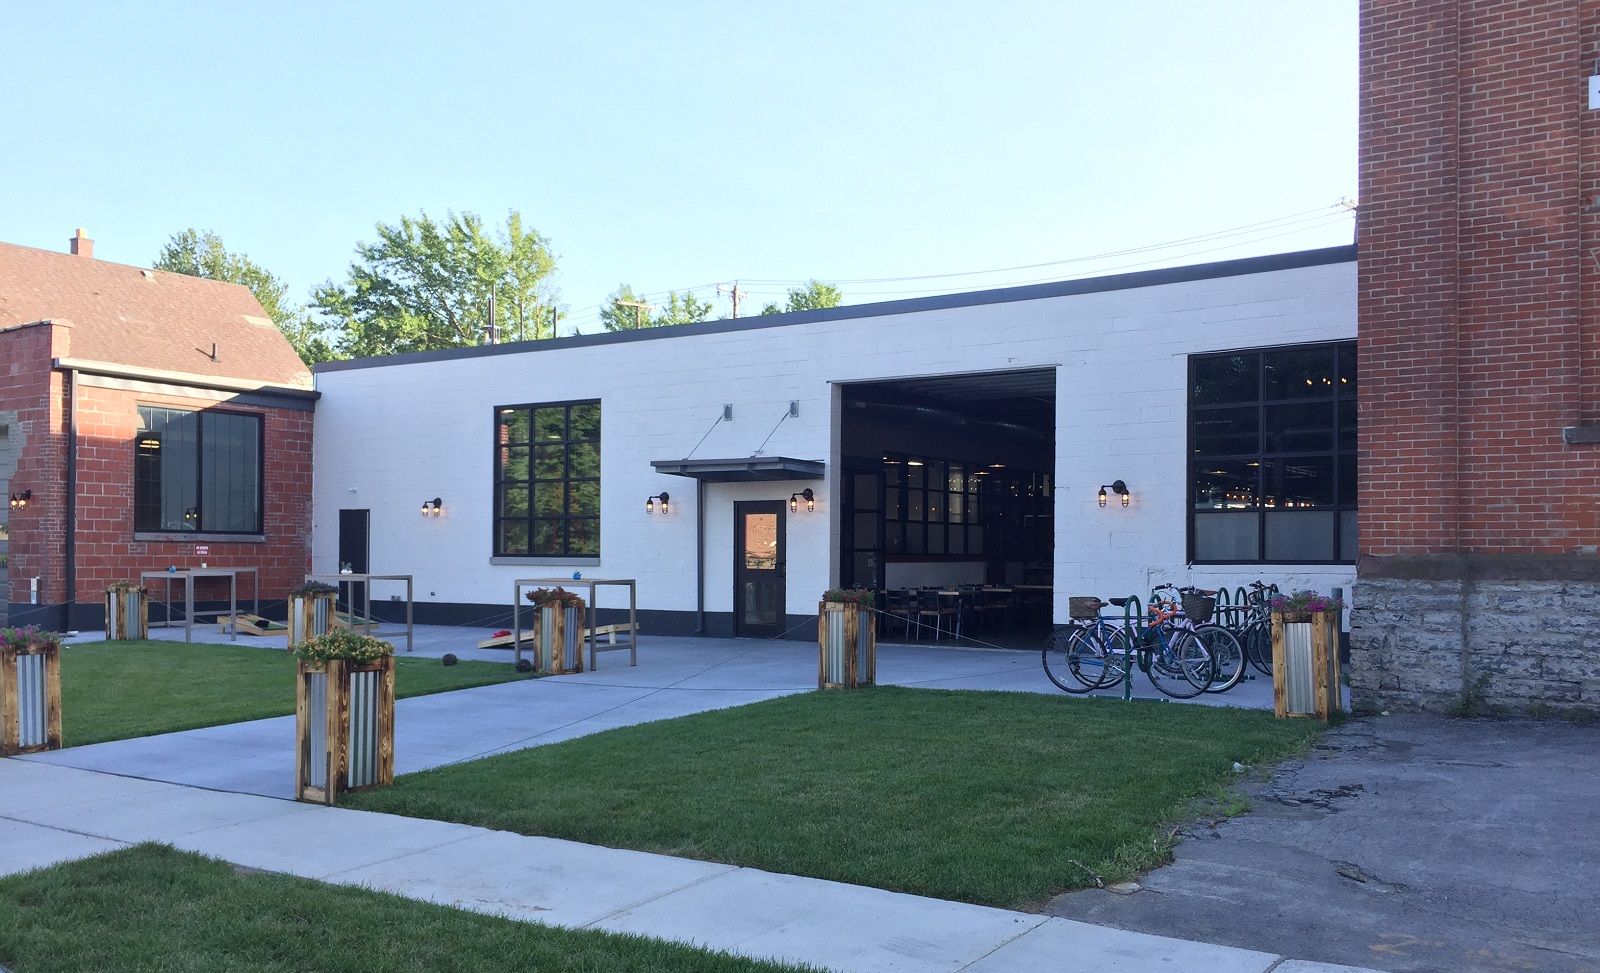 Introducing Community Beer Works\' new West Side brewery-taproom ...